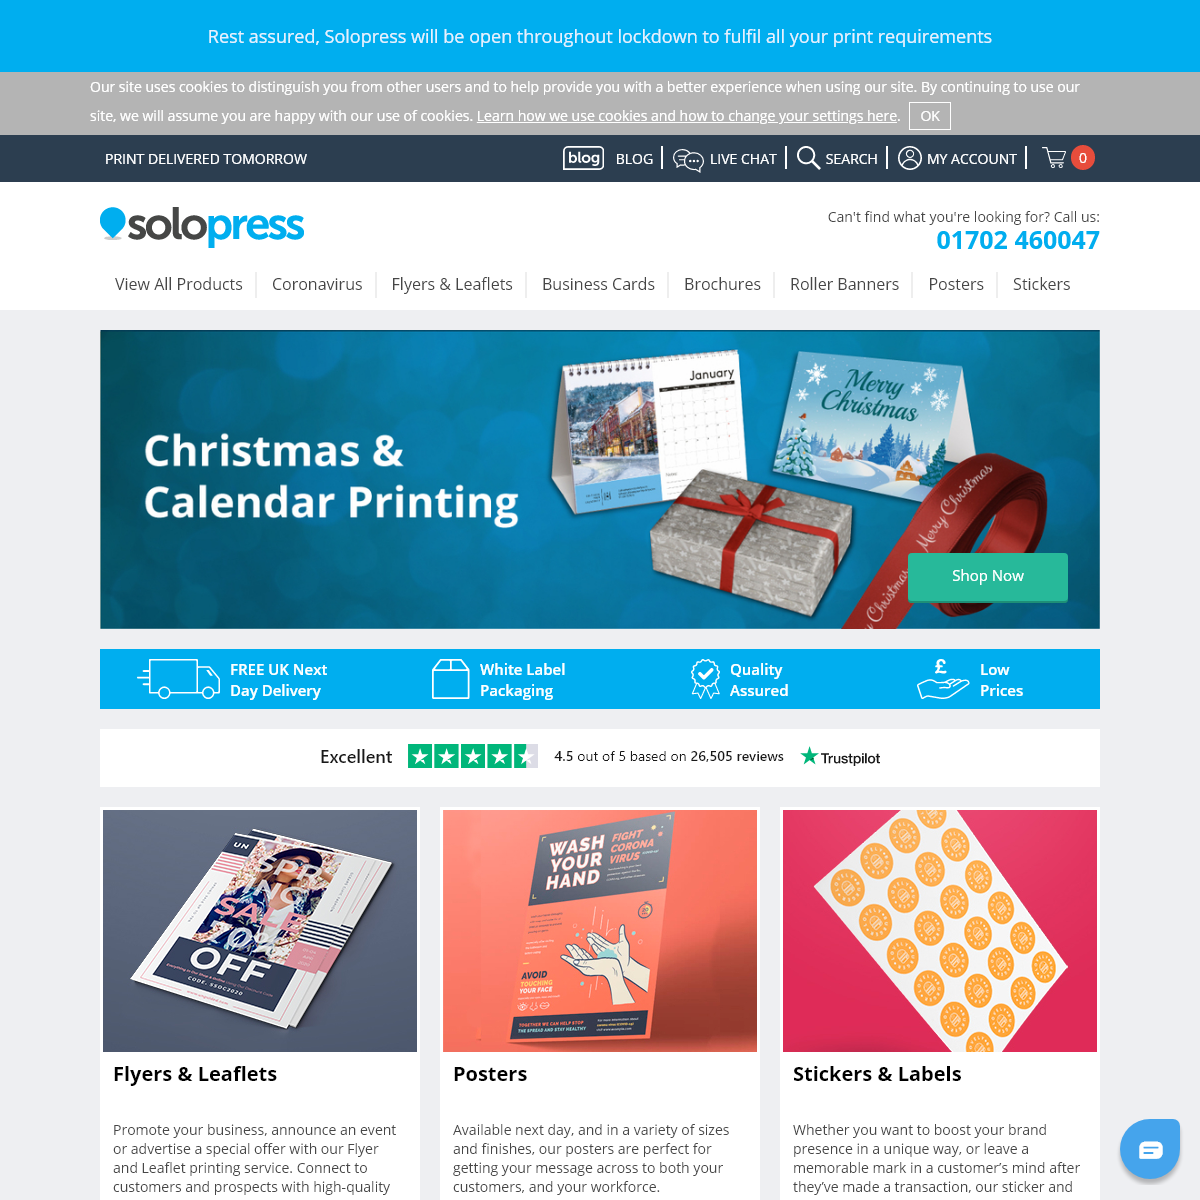 Online Printing Services with Next Day Delivery - Solopress UK